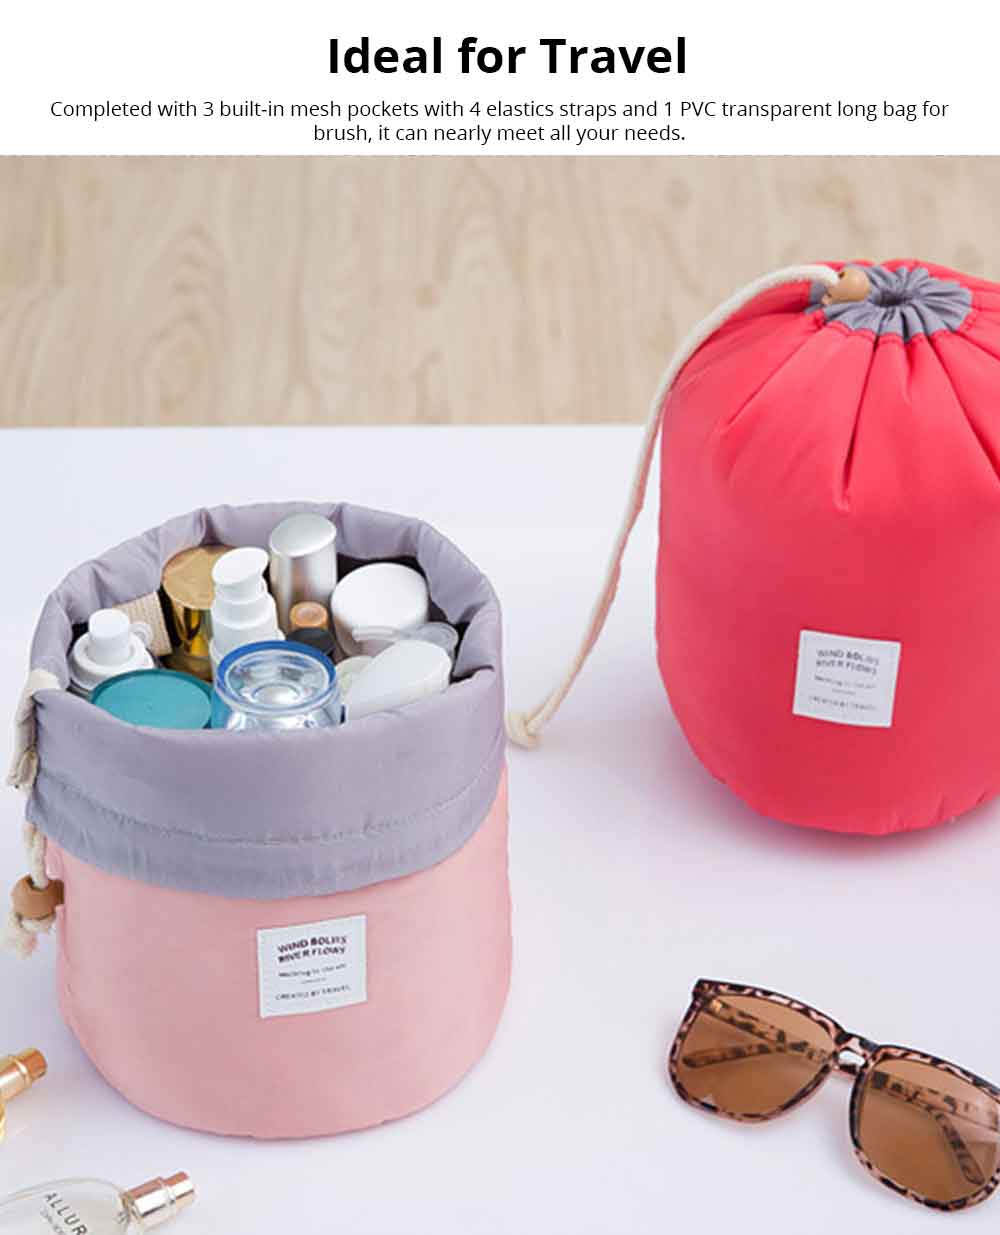 Cylinder Wash Make-up Bag, Large-capacity Girls Pull Rope Nylon Waterproof Travel Bag for Traveling Business Trip 5